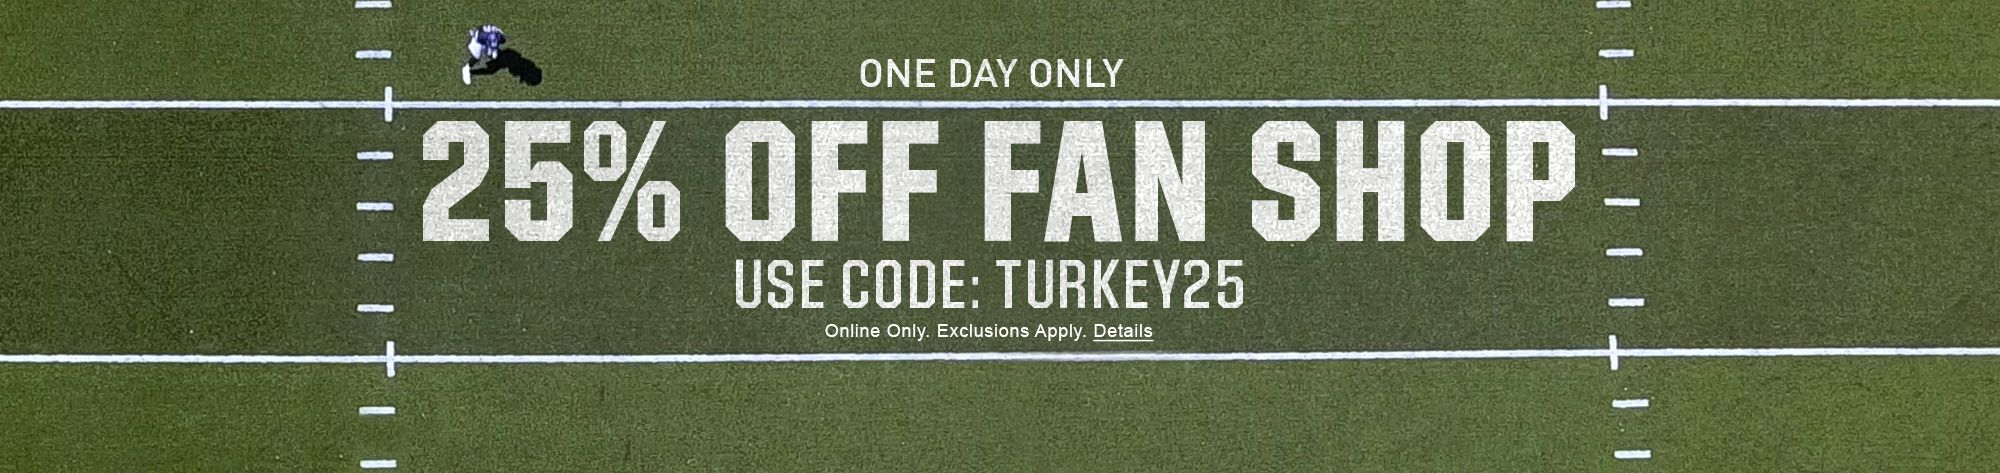 One Day Only 25% Off Fan Shop